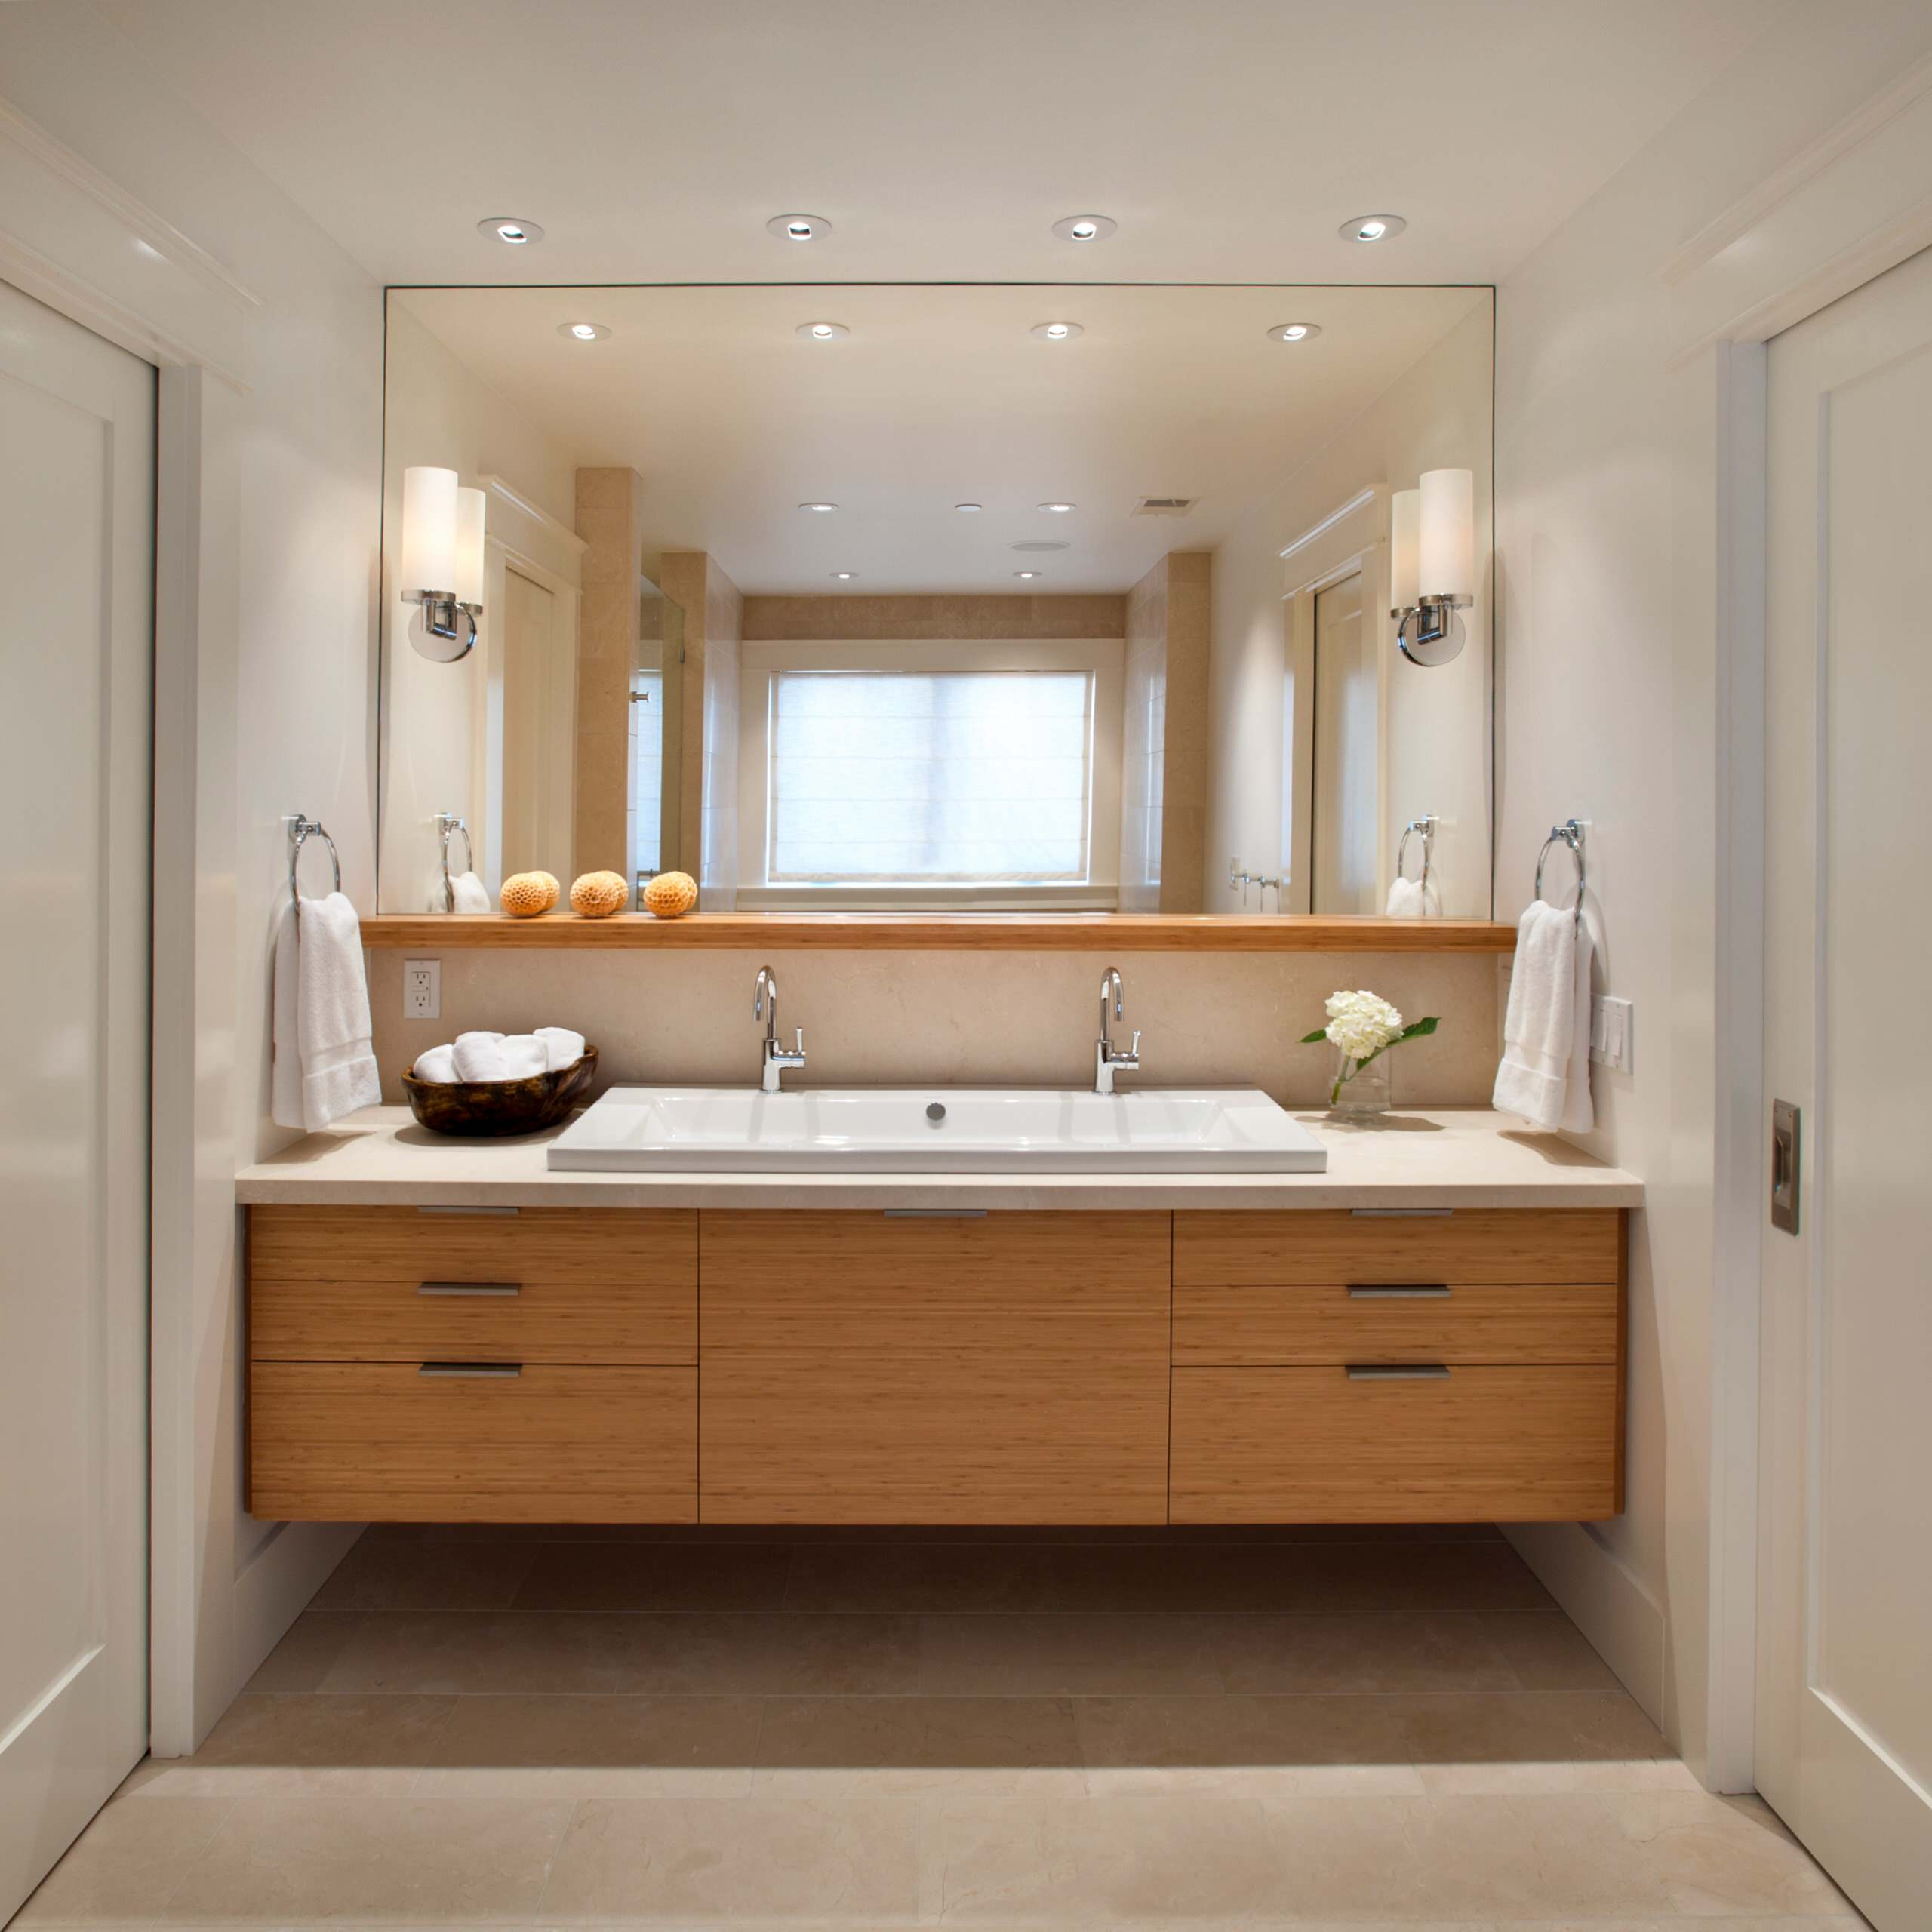 75 Beautiful Bathroom With A Trough Sink Pictures Ideas December 2020 Houzz